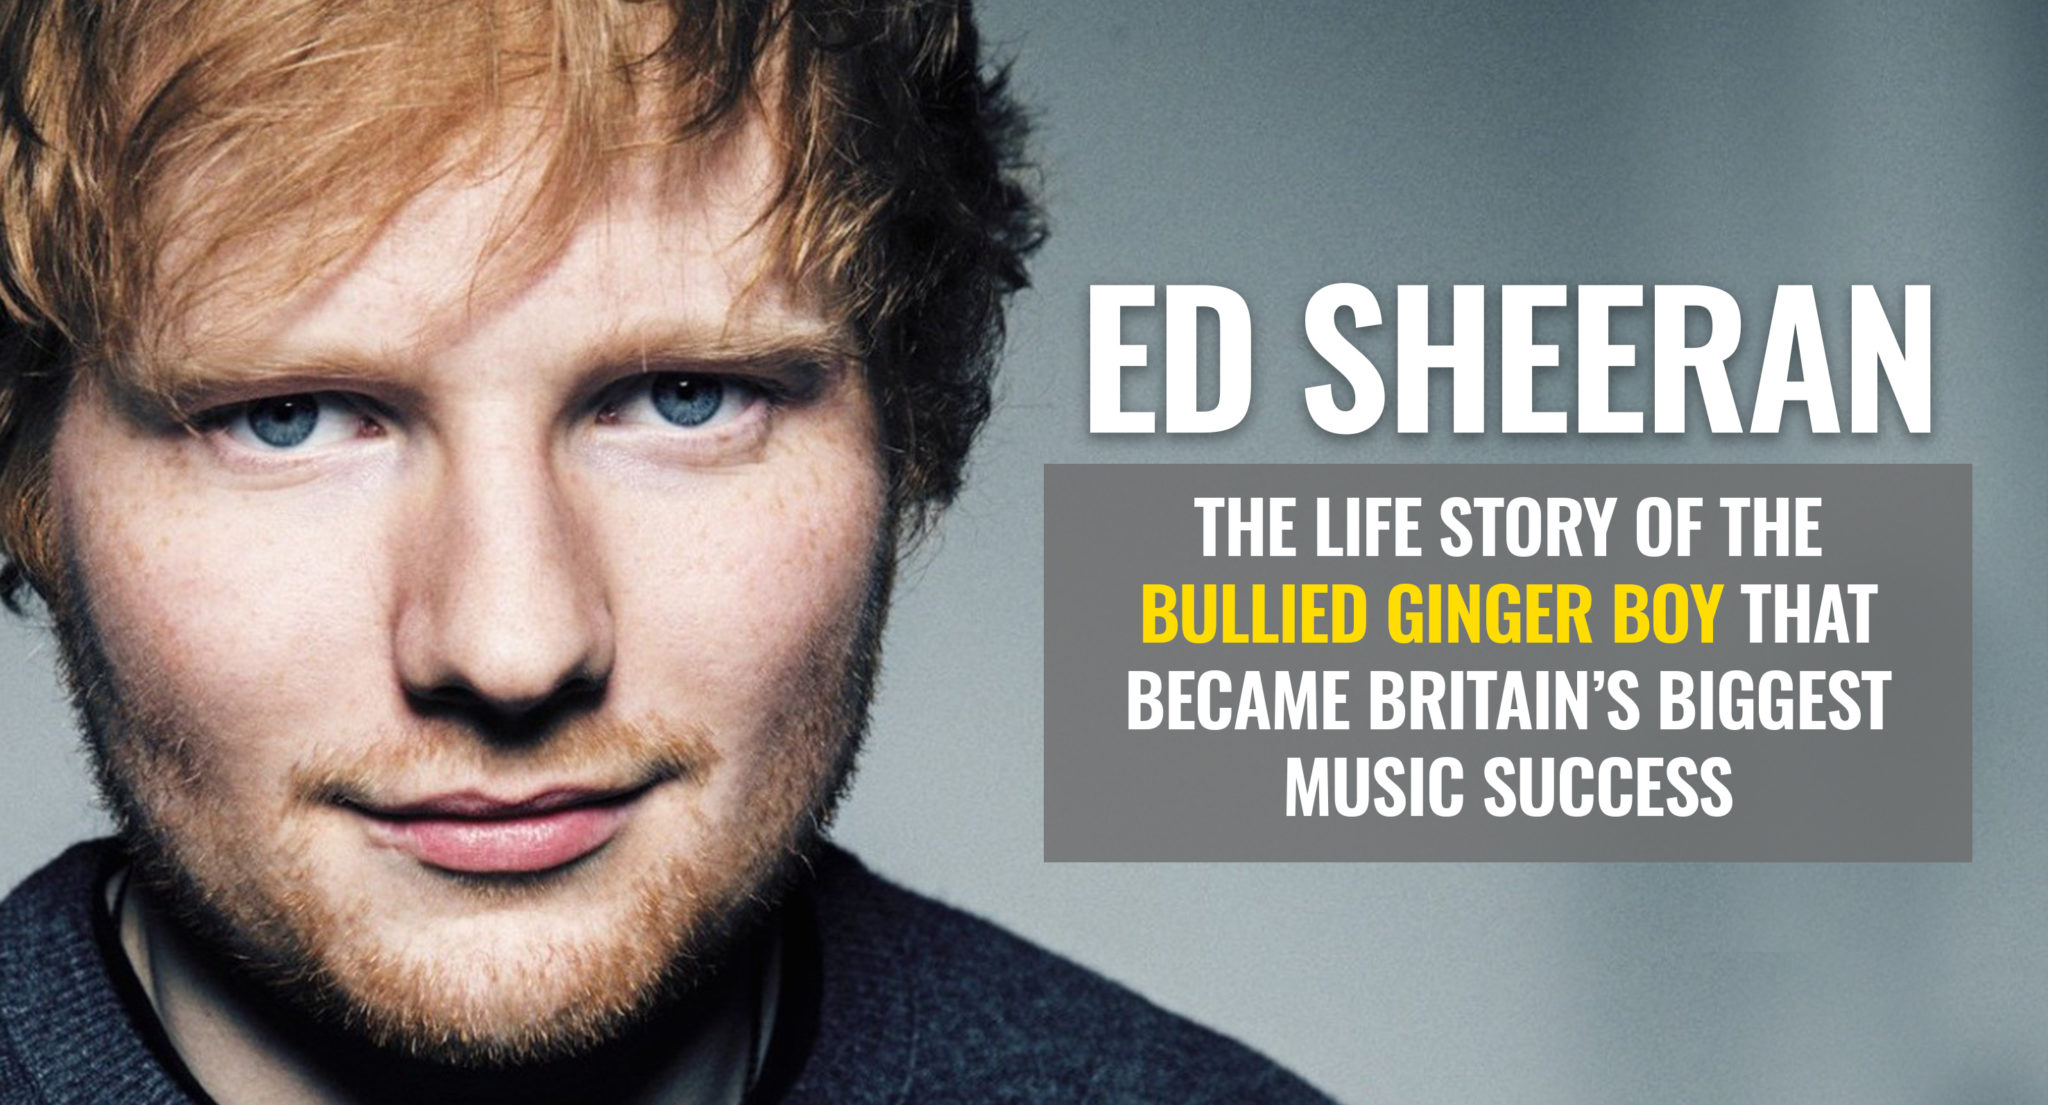 Ed Sheeran S Life Story How A Bullied Ginger Boy Became